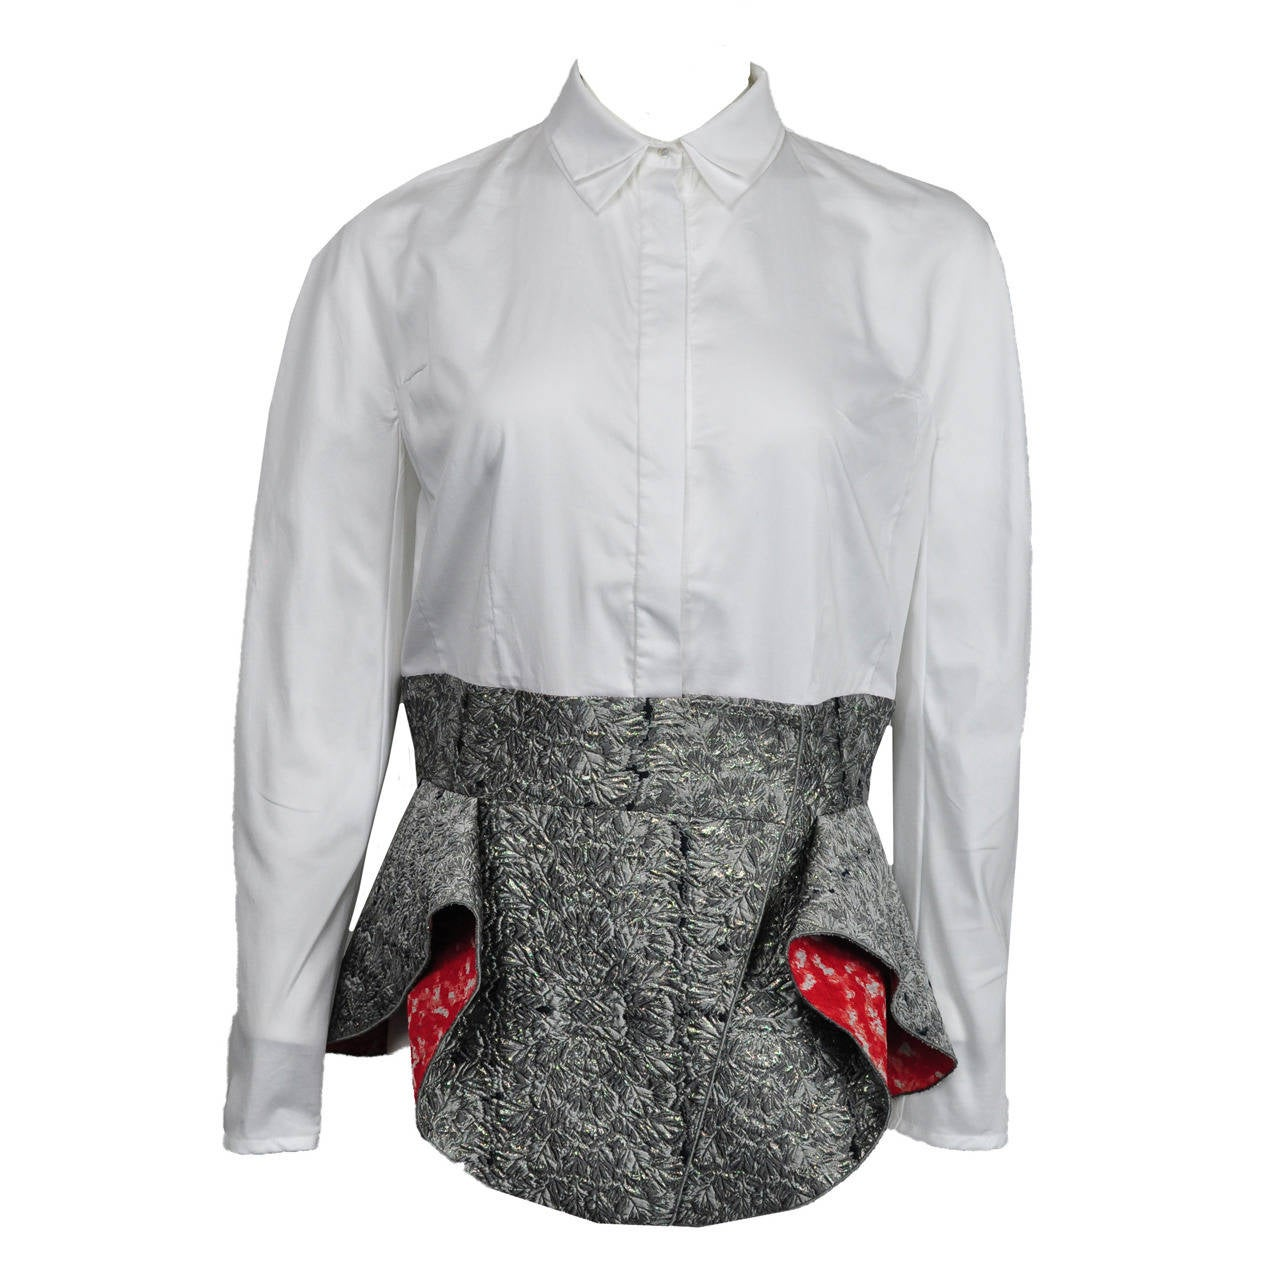 Antonio Berardi White Blouse With Boucle Peplum 1